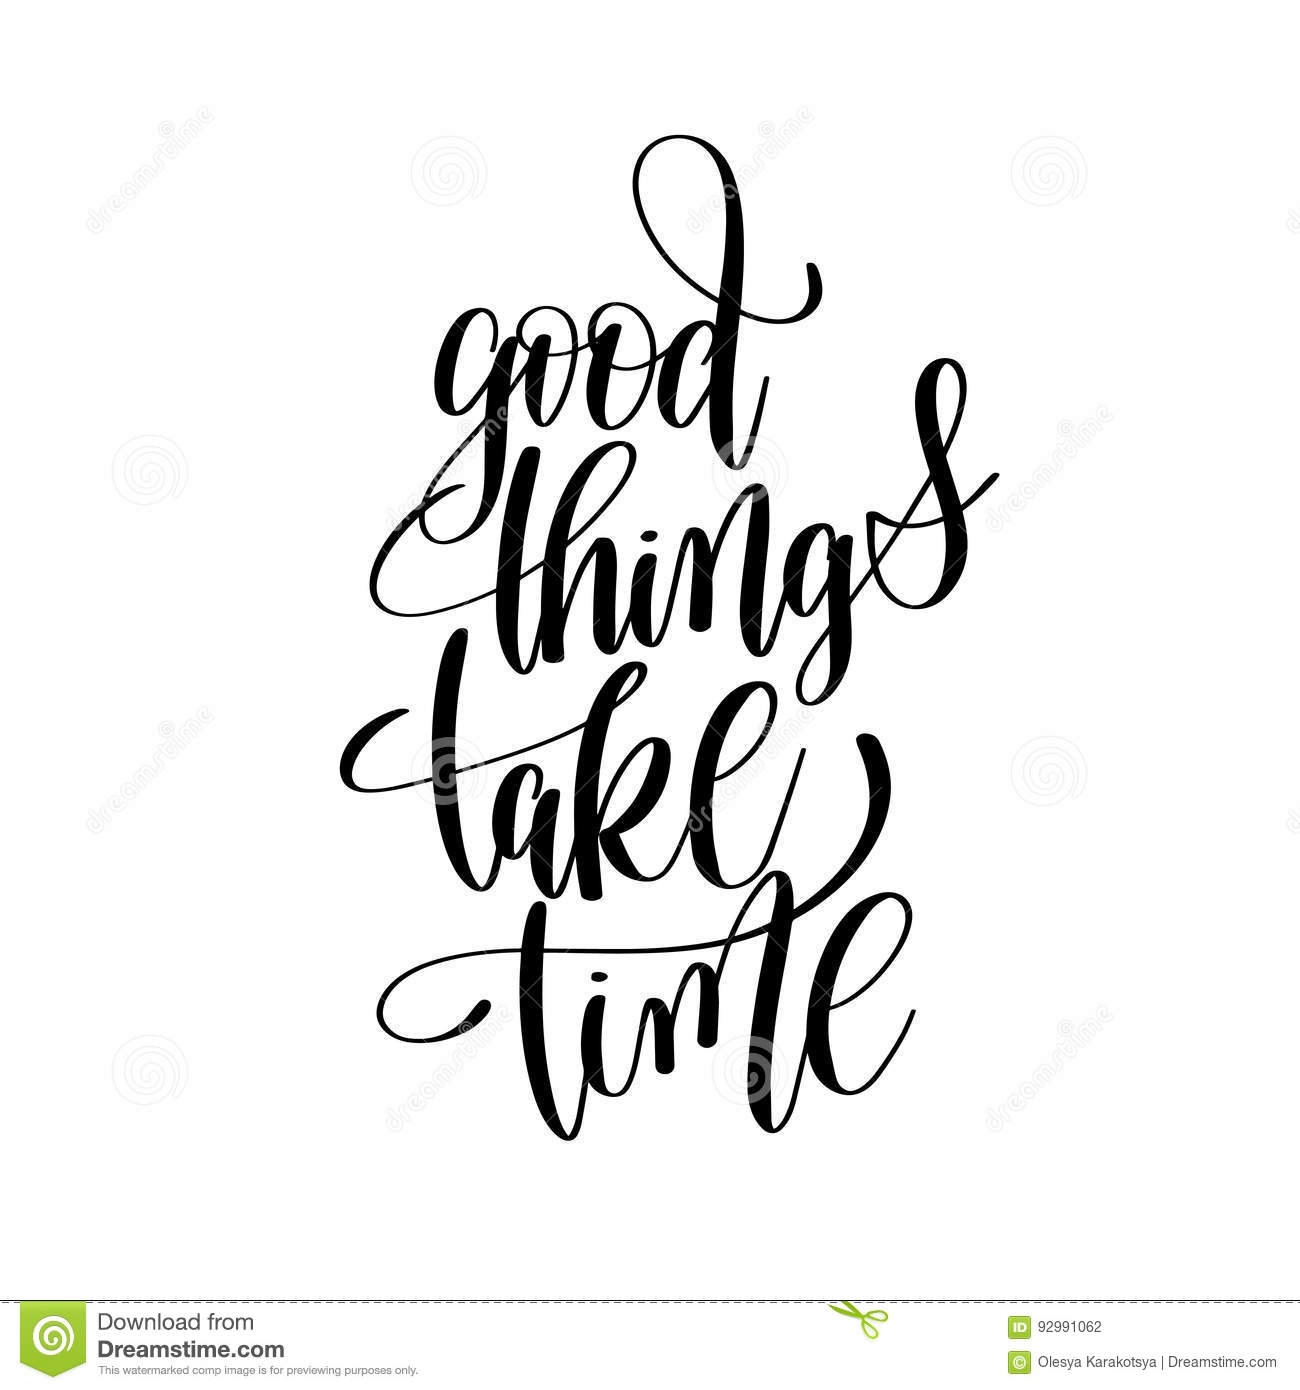 Good Things Take Time Inspiring Creative Motivation Quote Poster